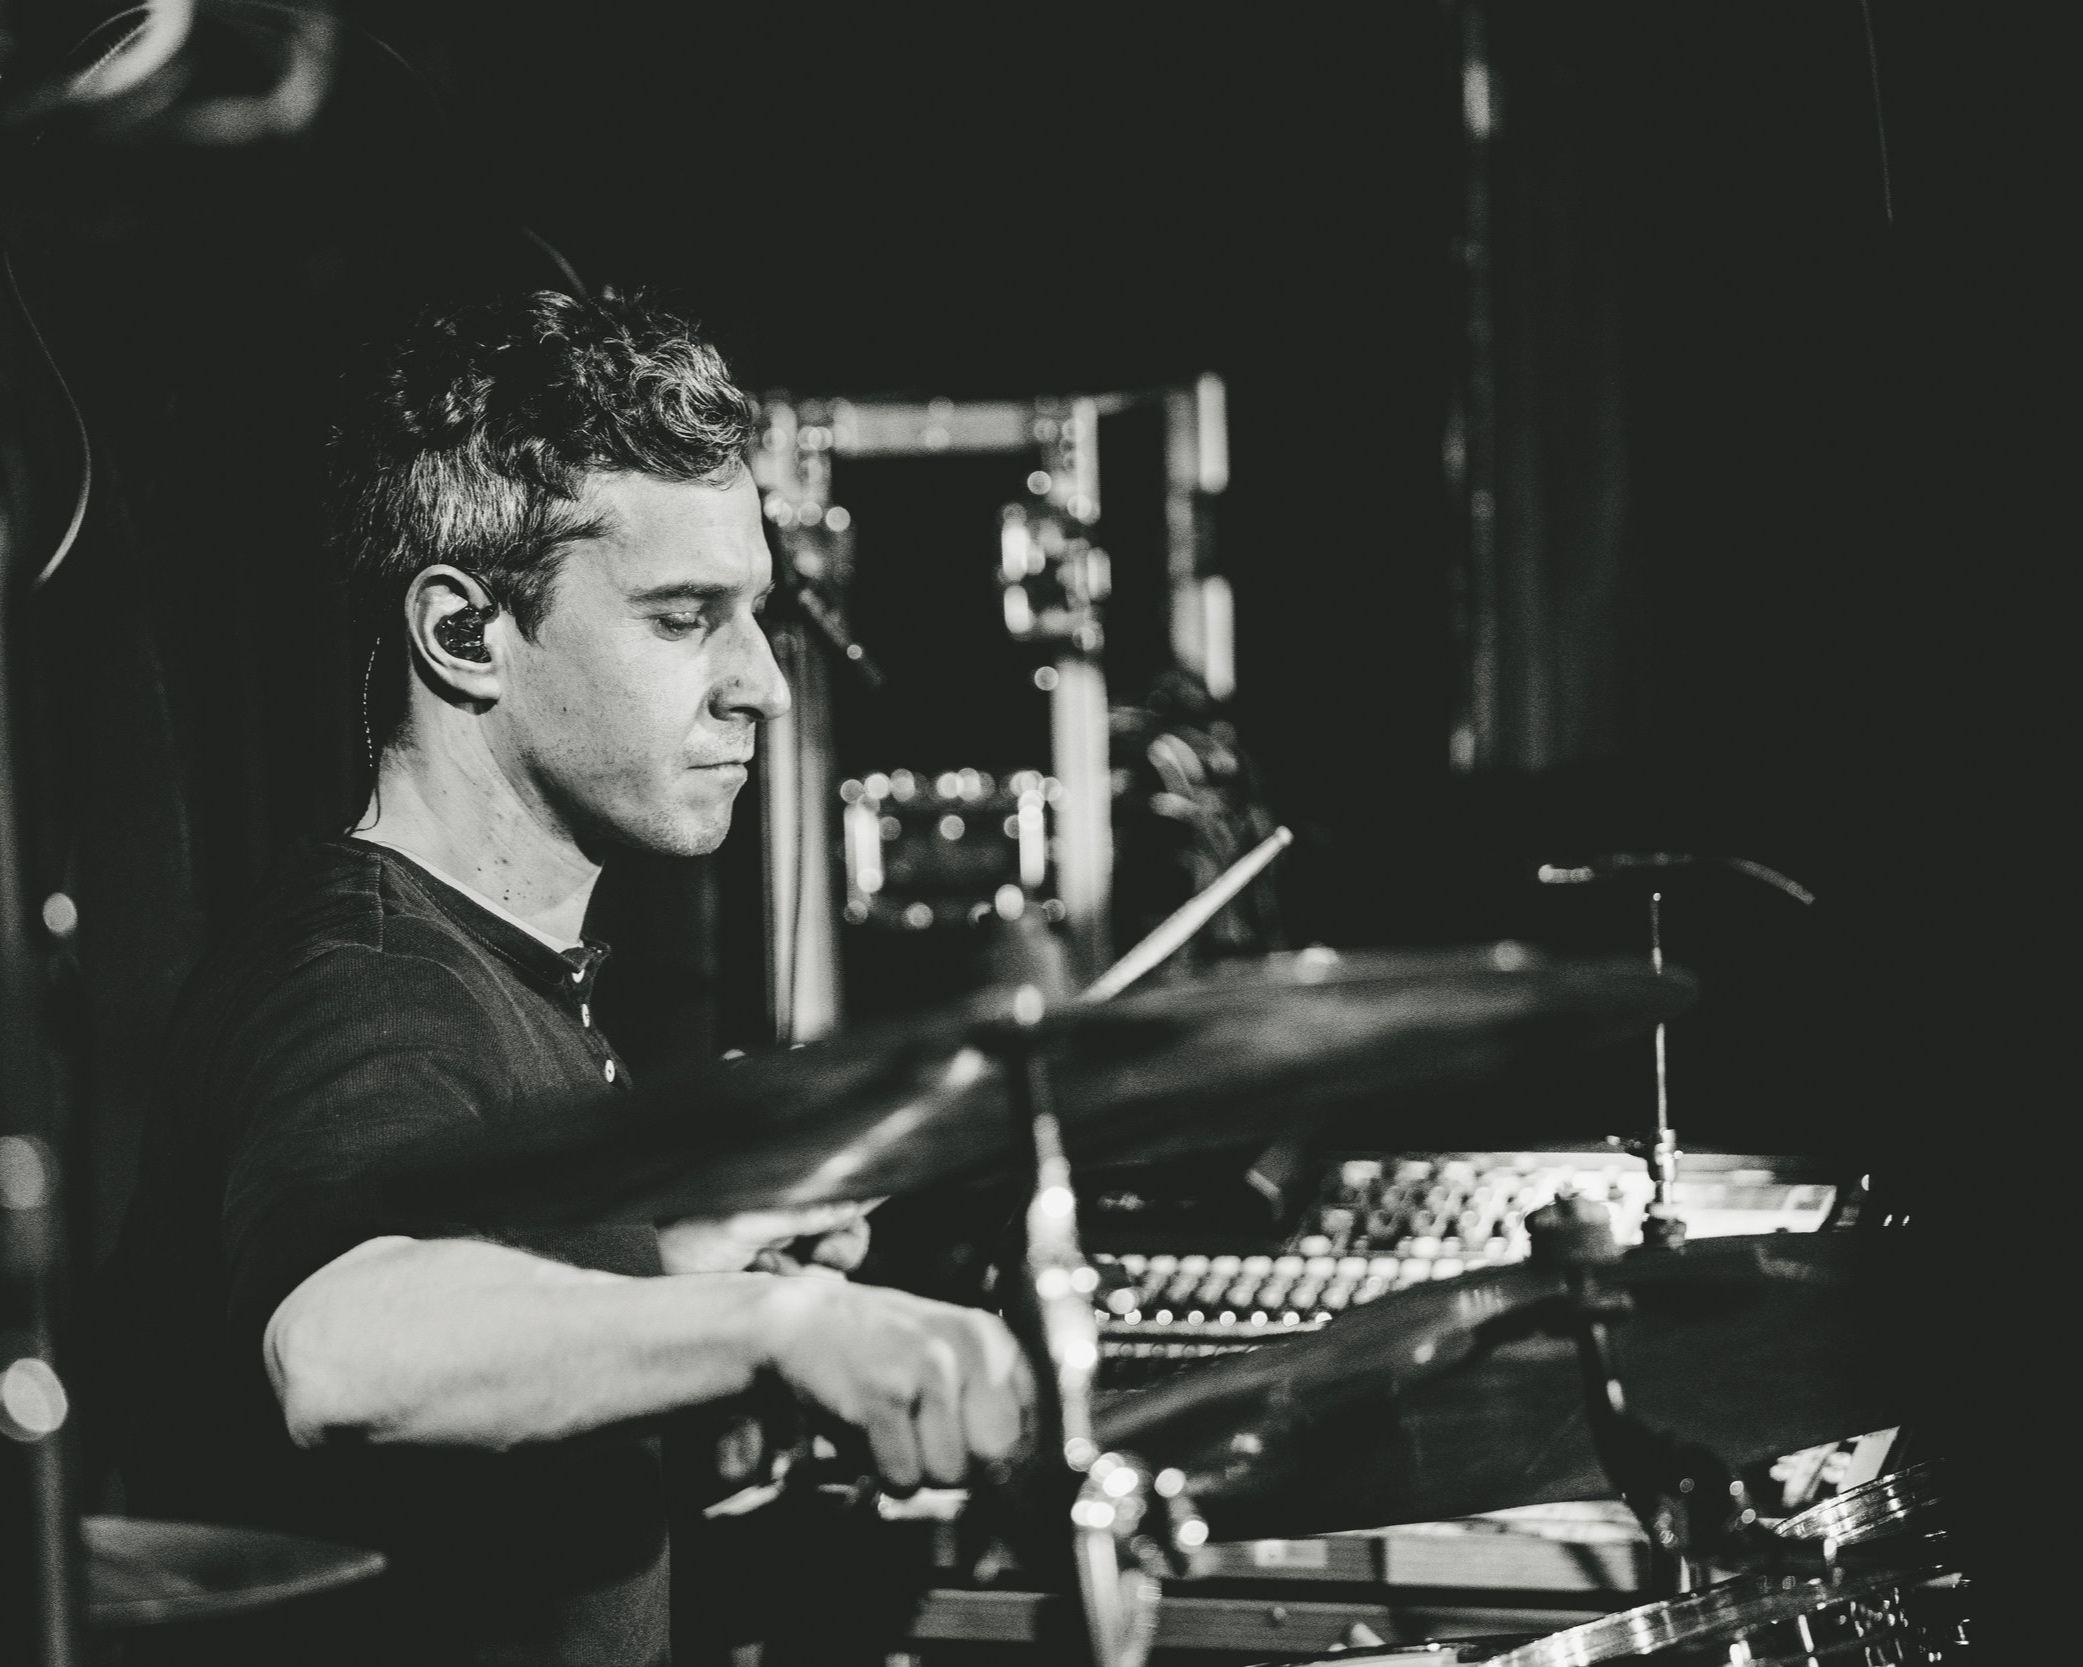 Andrew (Drums & Vocals)